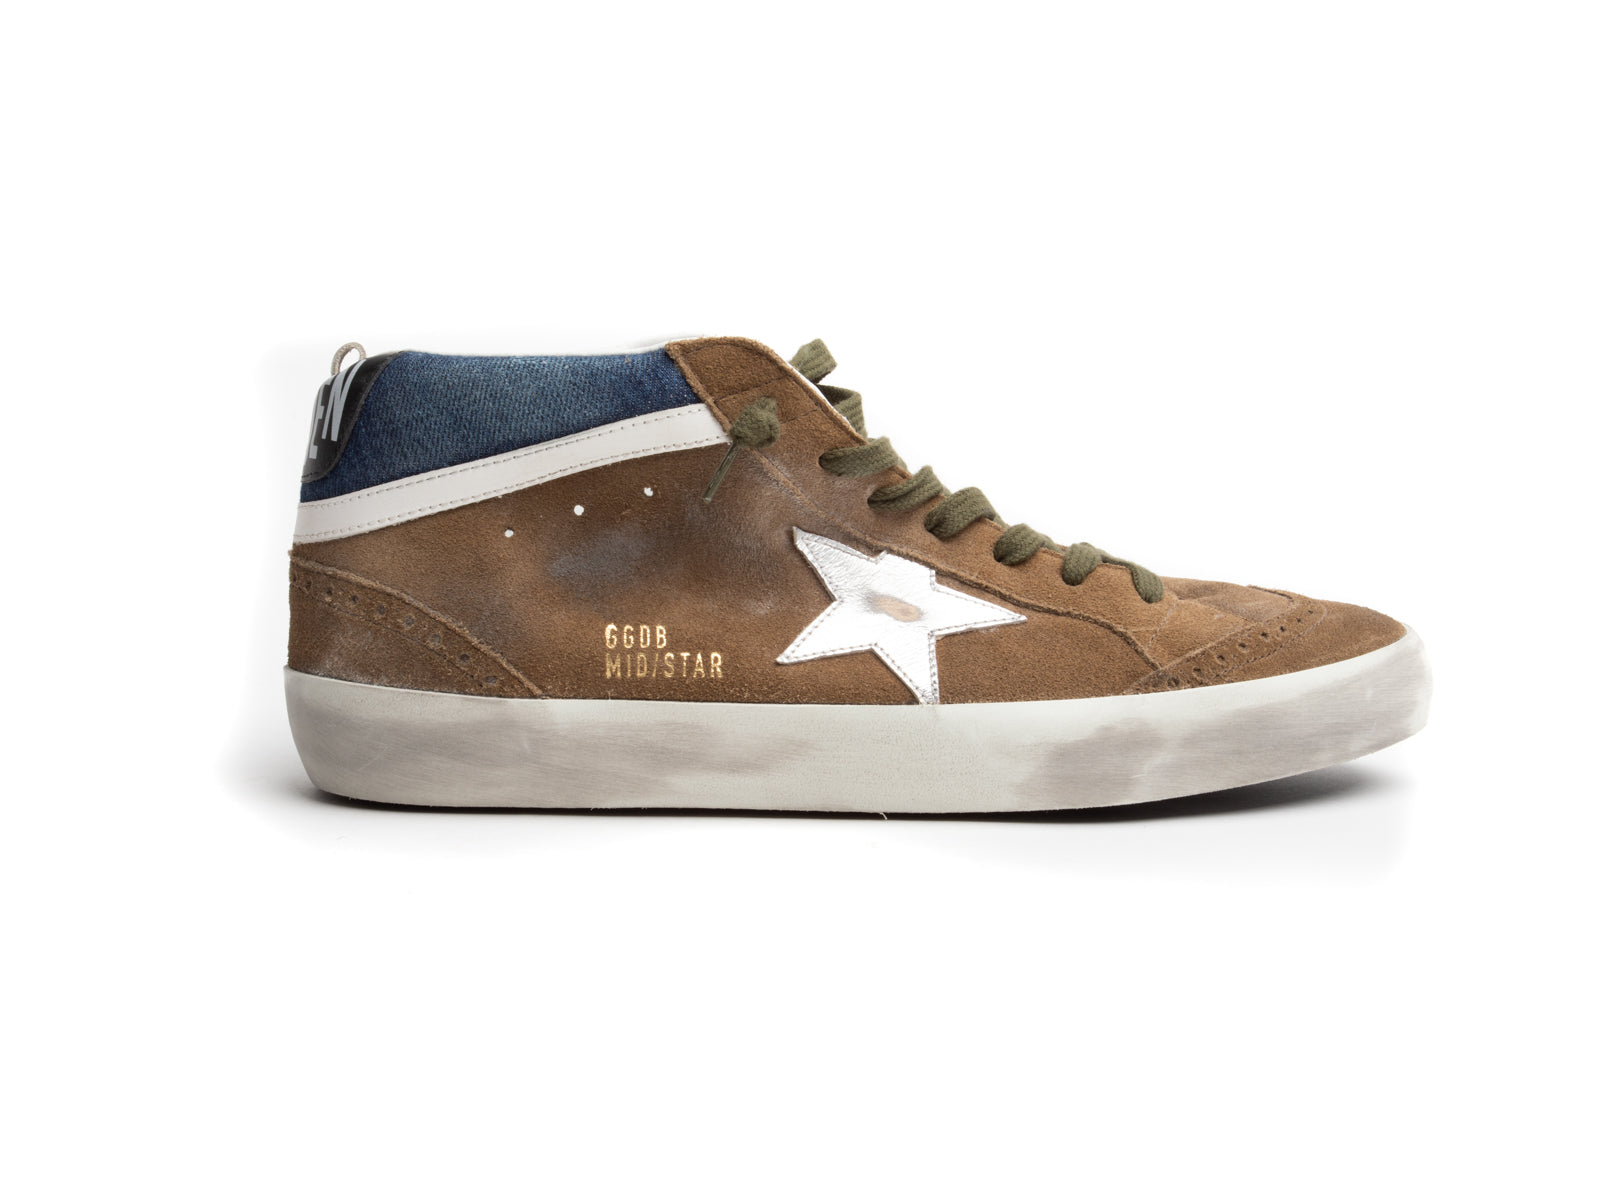 Mid-Star Sneaker with Tobacco Suede, Denim and Silver Star